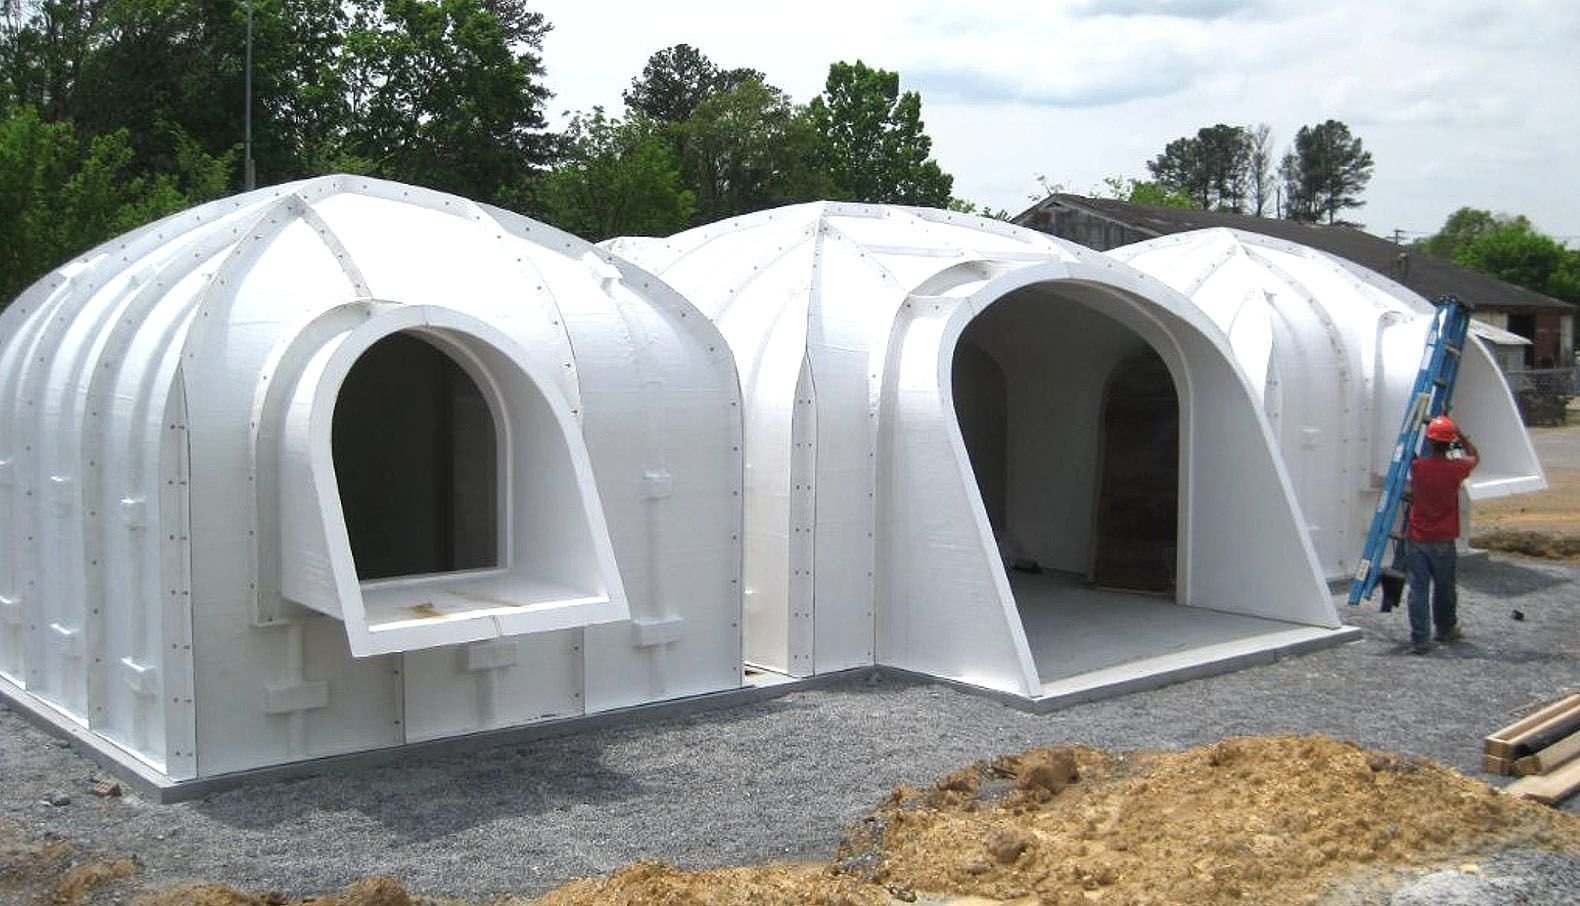 Best Kitchen Gallery: A Green Roofed Hobbit Home Anyone Can Build In Just 3 Days Green of Basic Underground Homes on rachelxblog.com